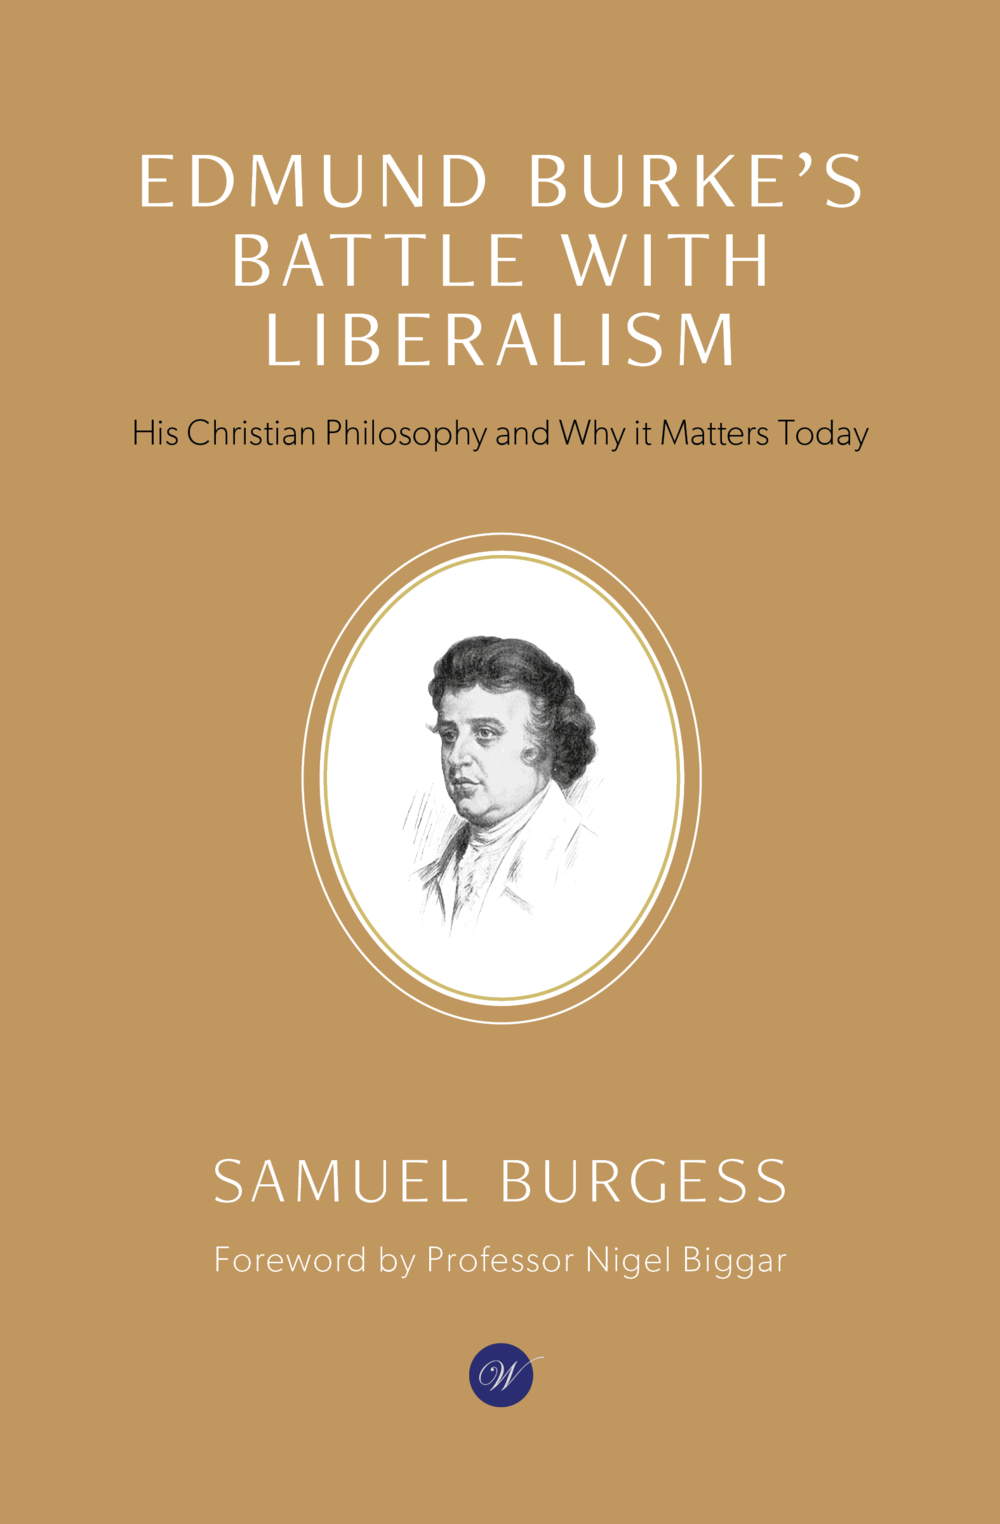 Edmund Burke's Battle With Liberalism - Shows how secular humanist liberalism undermines the God-given and organic order of society